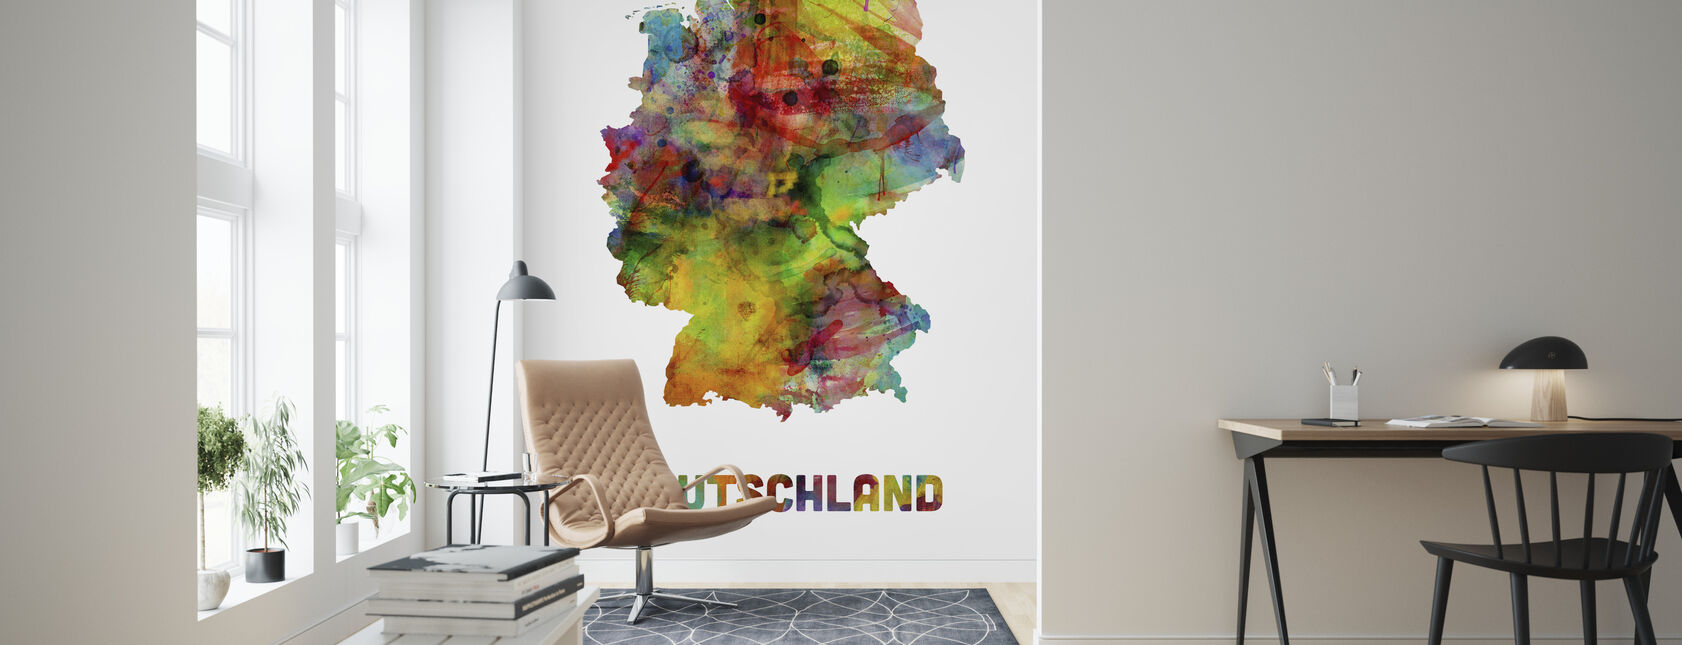 Germany Watercolor Map - Wallpaper - Living Room